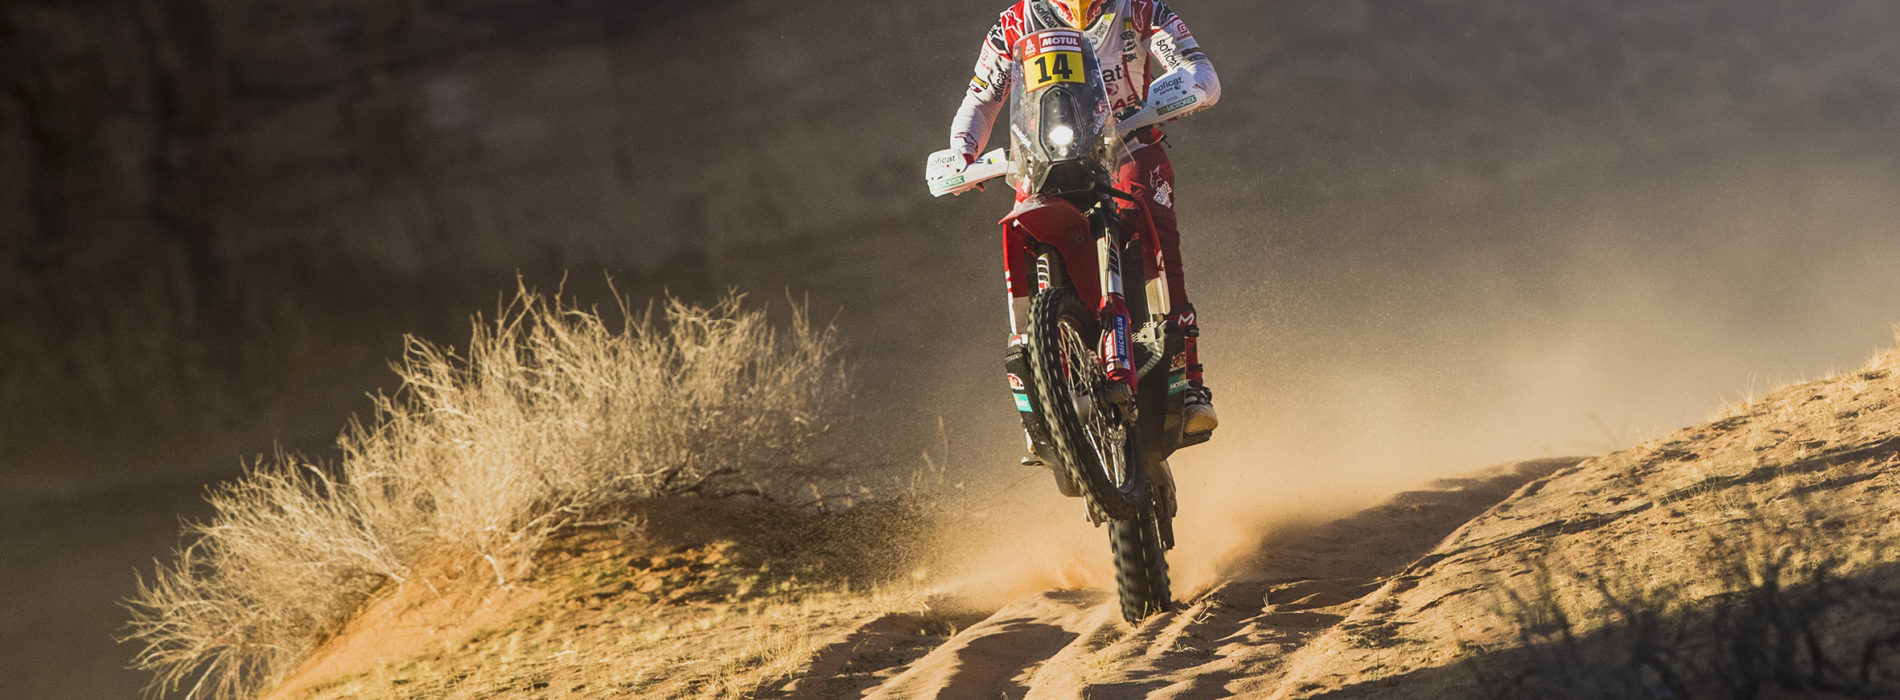 Dakar Rally Stage 5 completed- Women hit sand dunes and stoney off track terrain